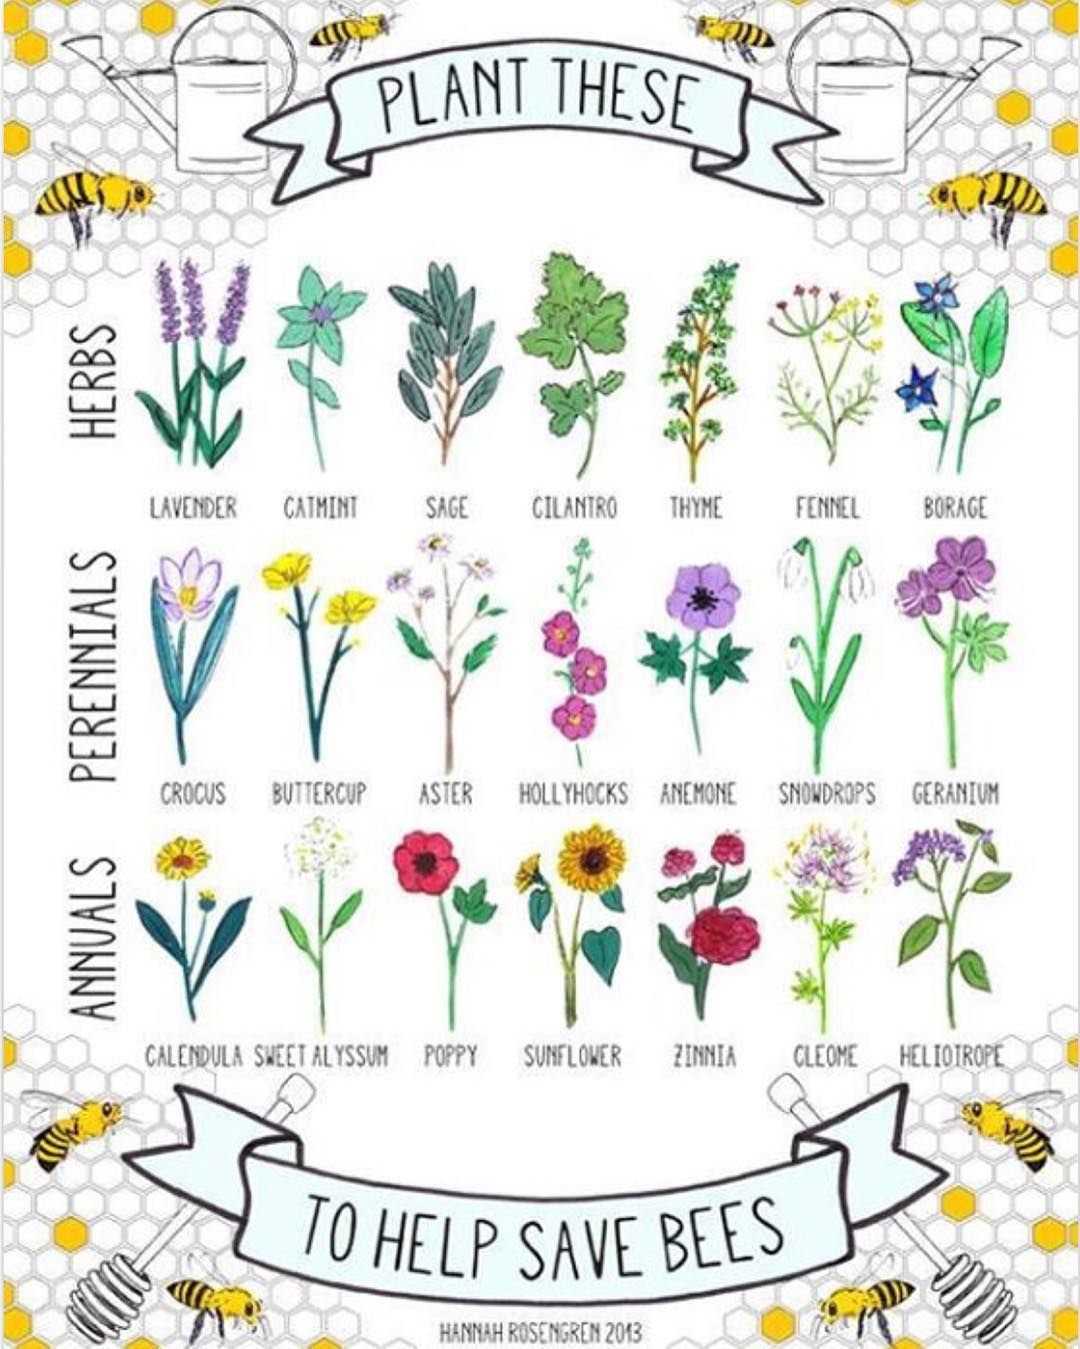 Plant these to help save bees herbs perennials and annuals thanks plant these to help save bees herbs perennials and annuals thanks hannahrosengren izmirmasajfo